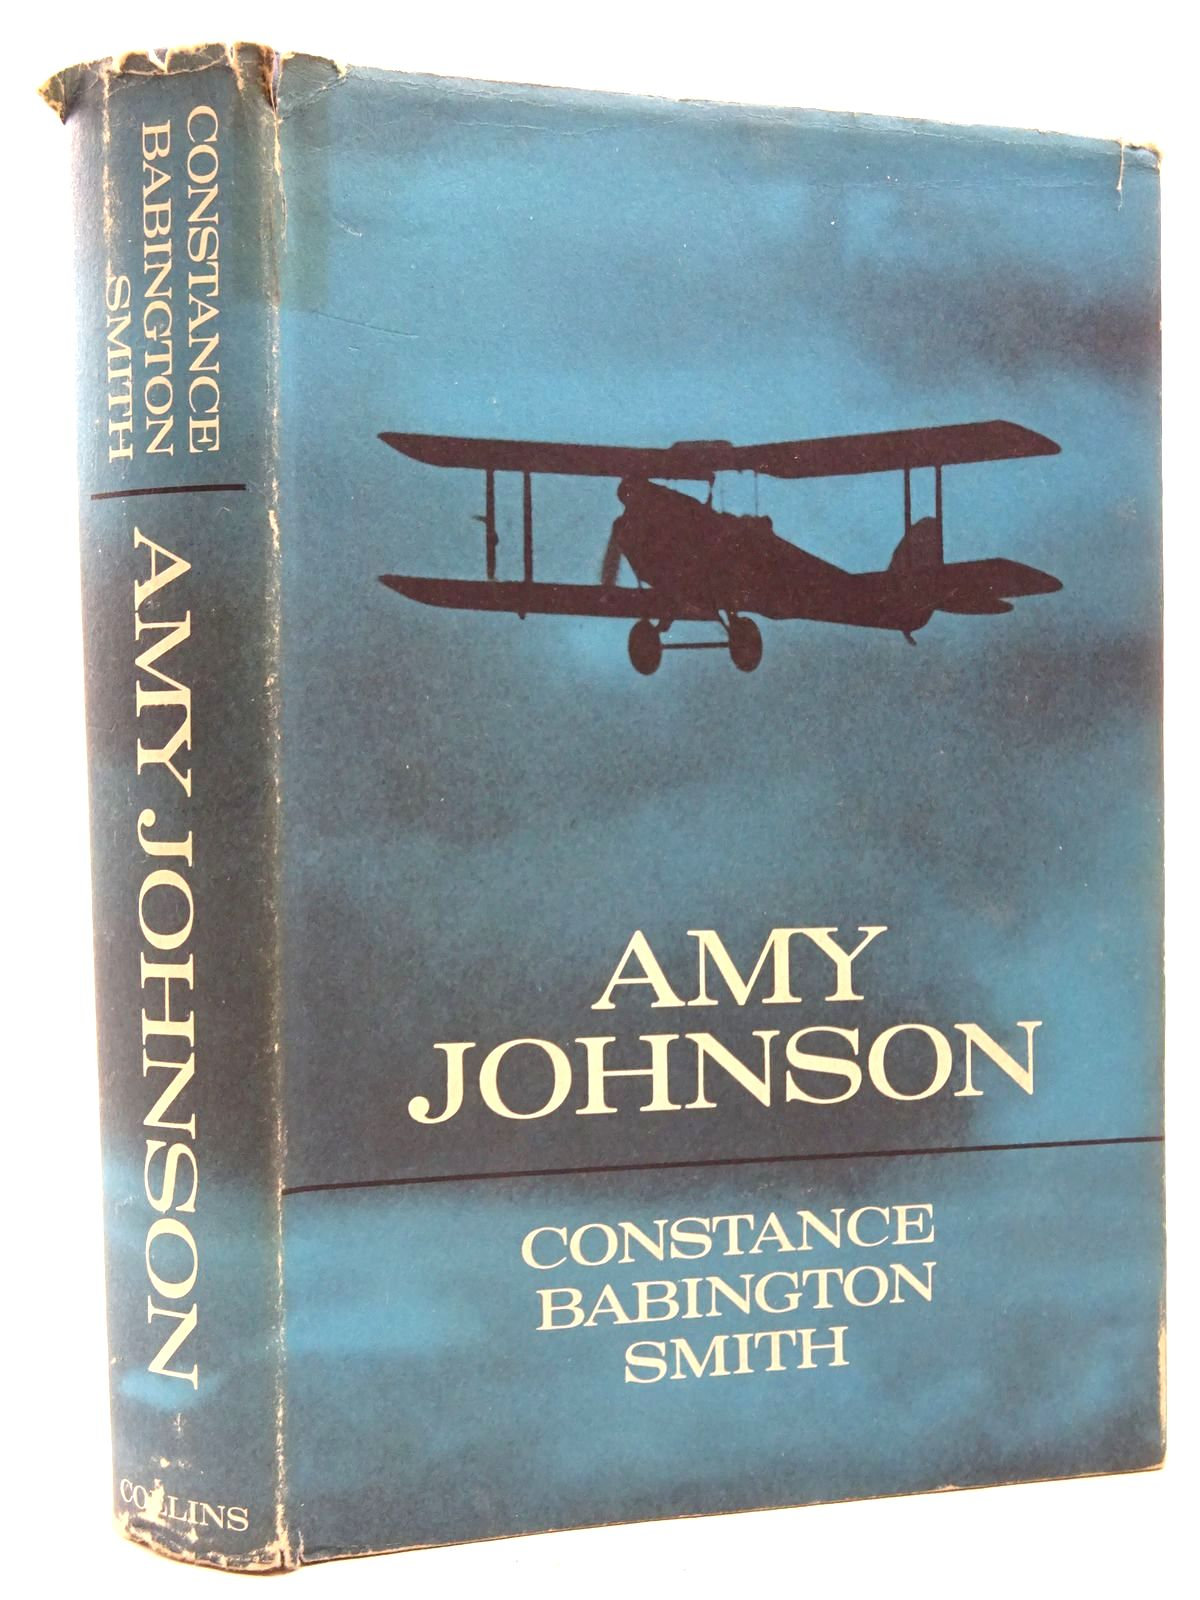 Photo of AMY JOHNSON written by Smith, Constance Babington published by Collins (STOCK CODE: 2124808)  for sale by Stella & Rose's Books